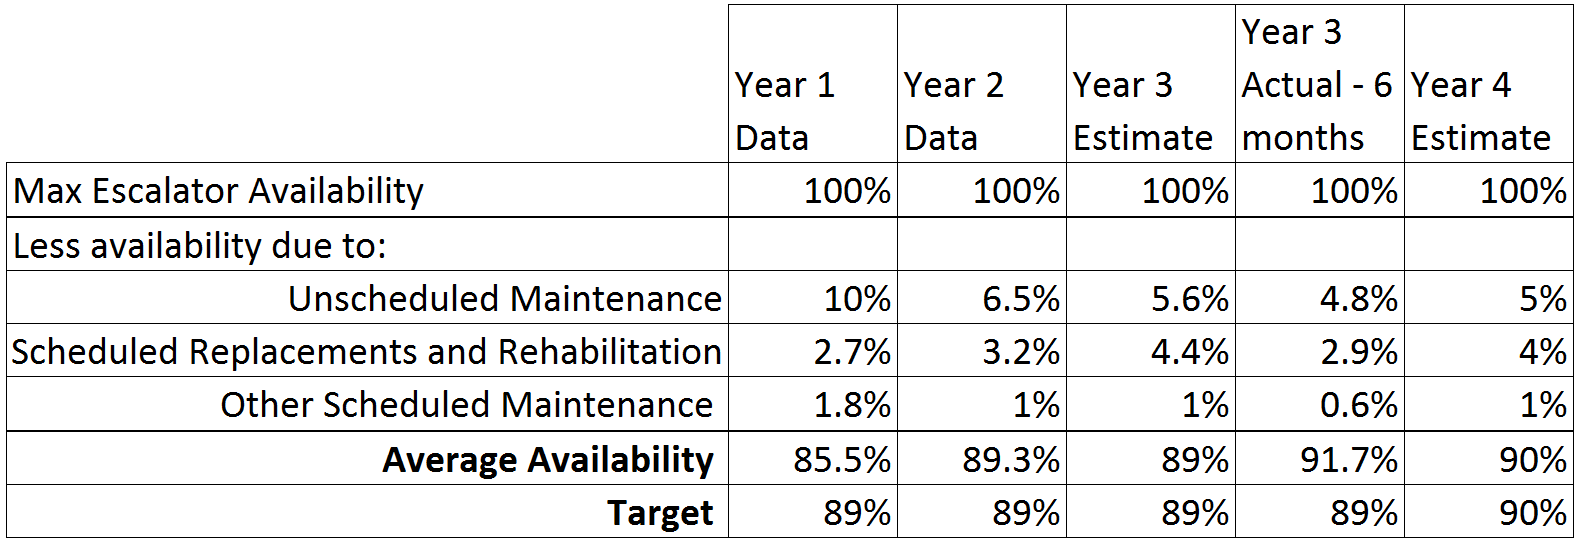 A table showing average and target escalator availability based on unscheduled maintenance, scheduled replacements and rehabilitation, and other scheduled maintenance.